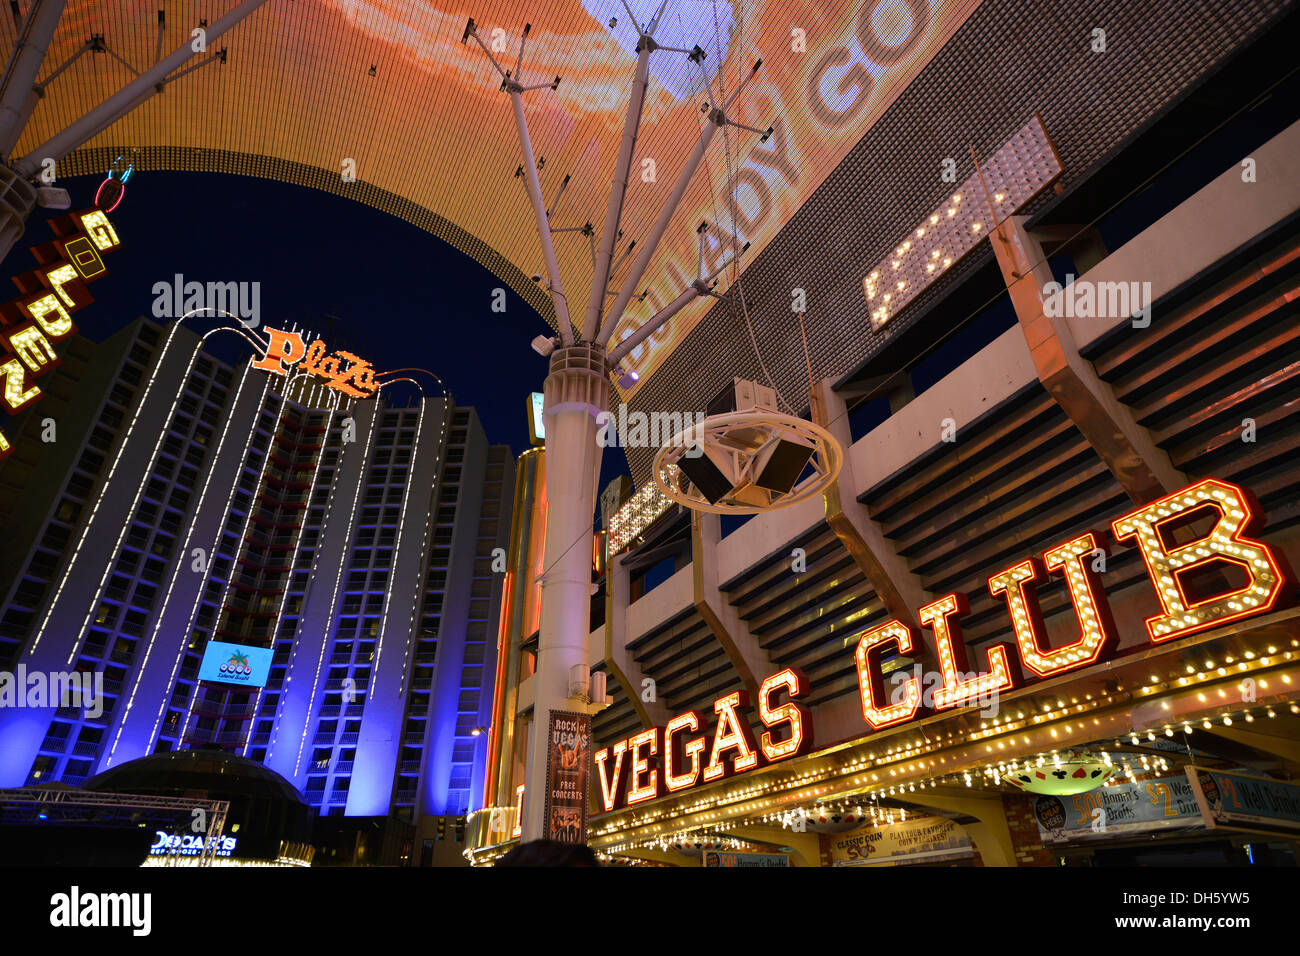 casino vegas club